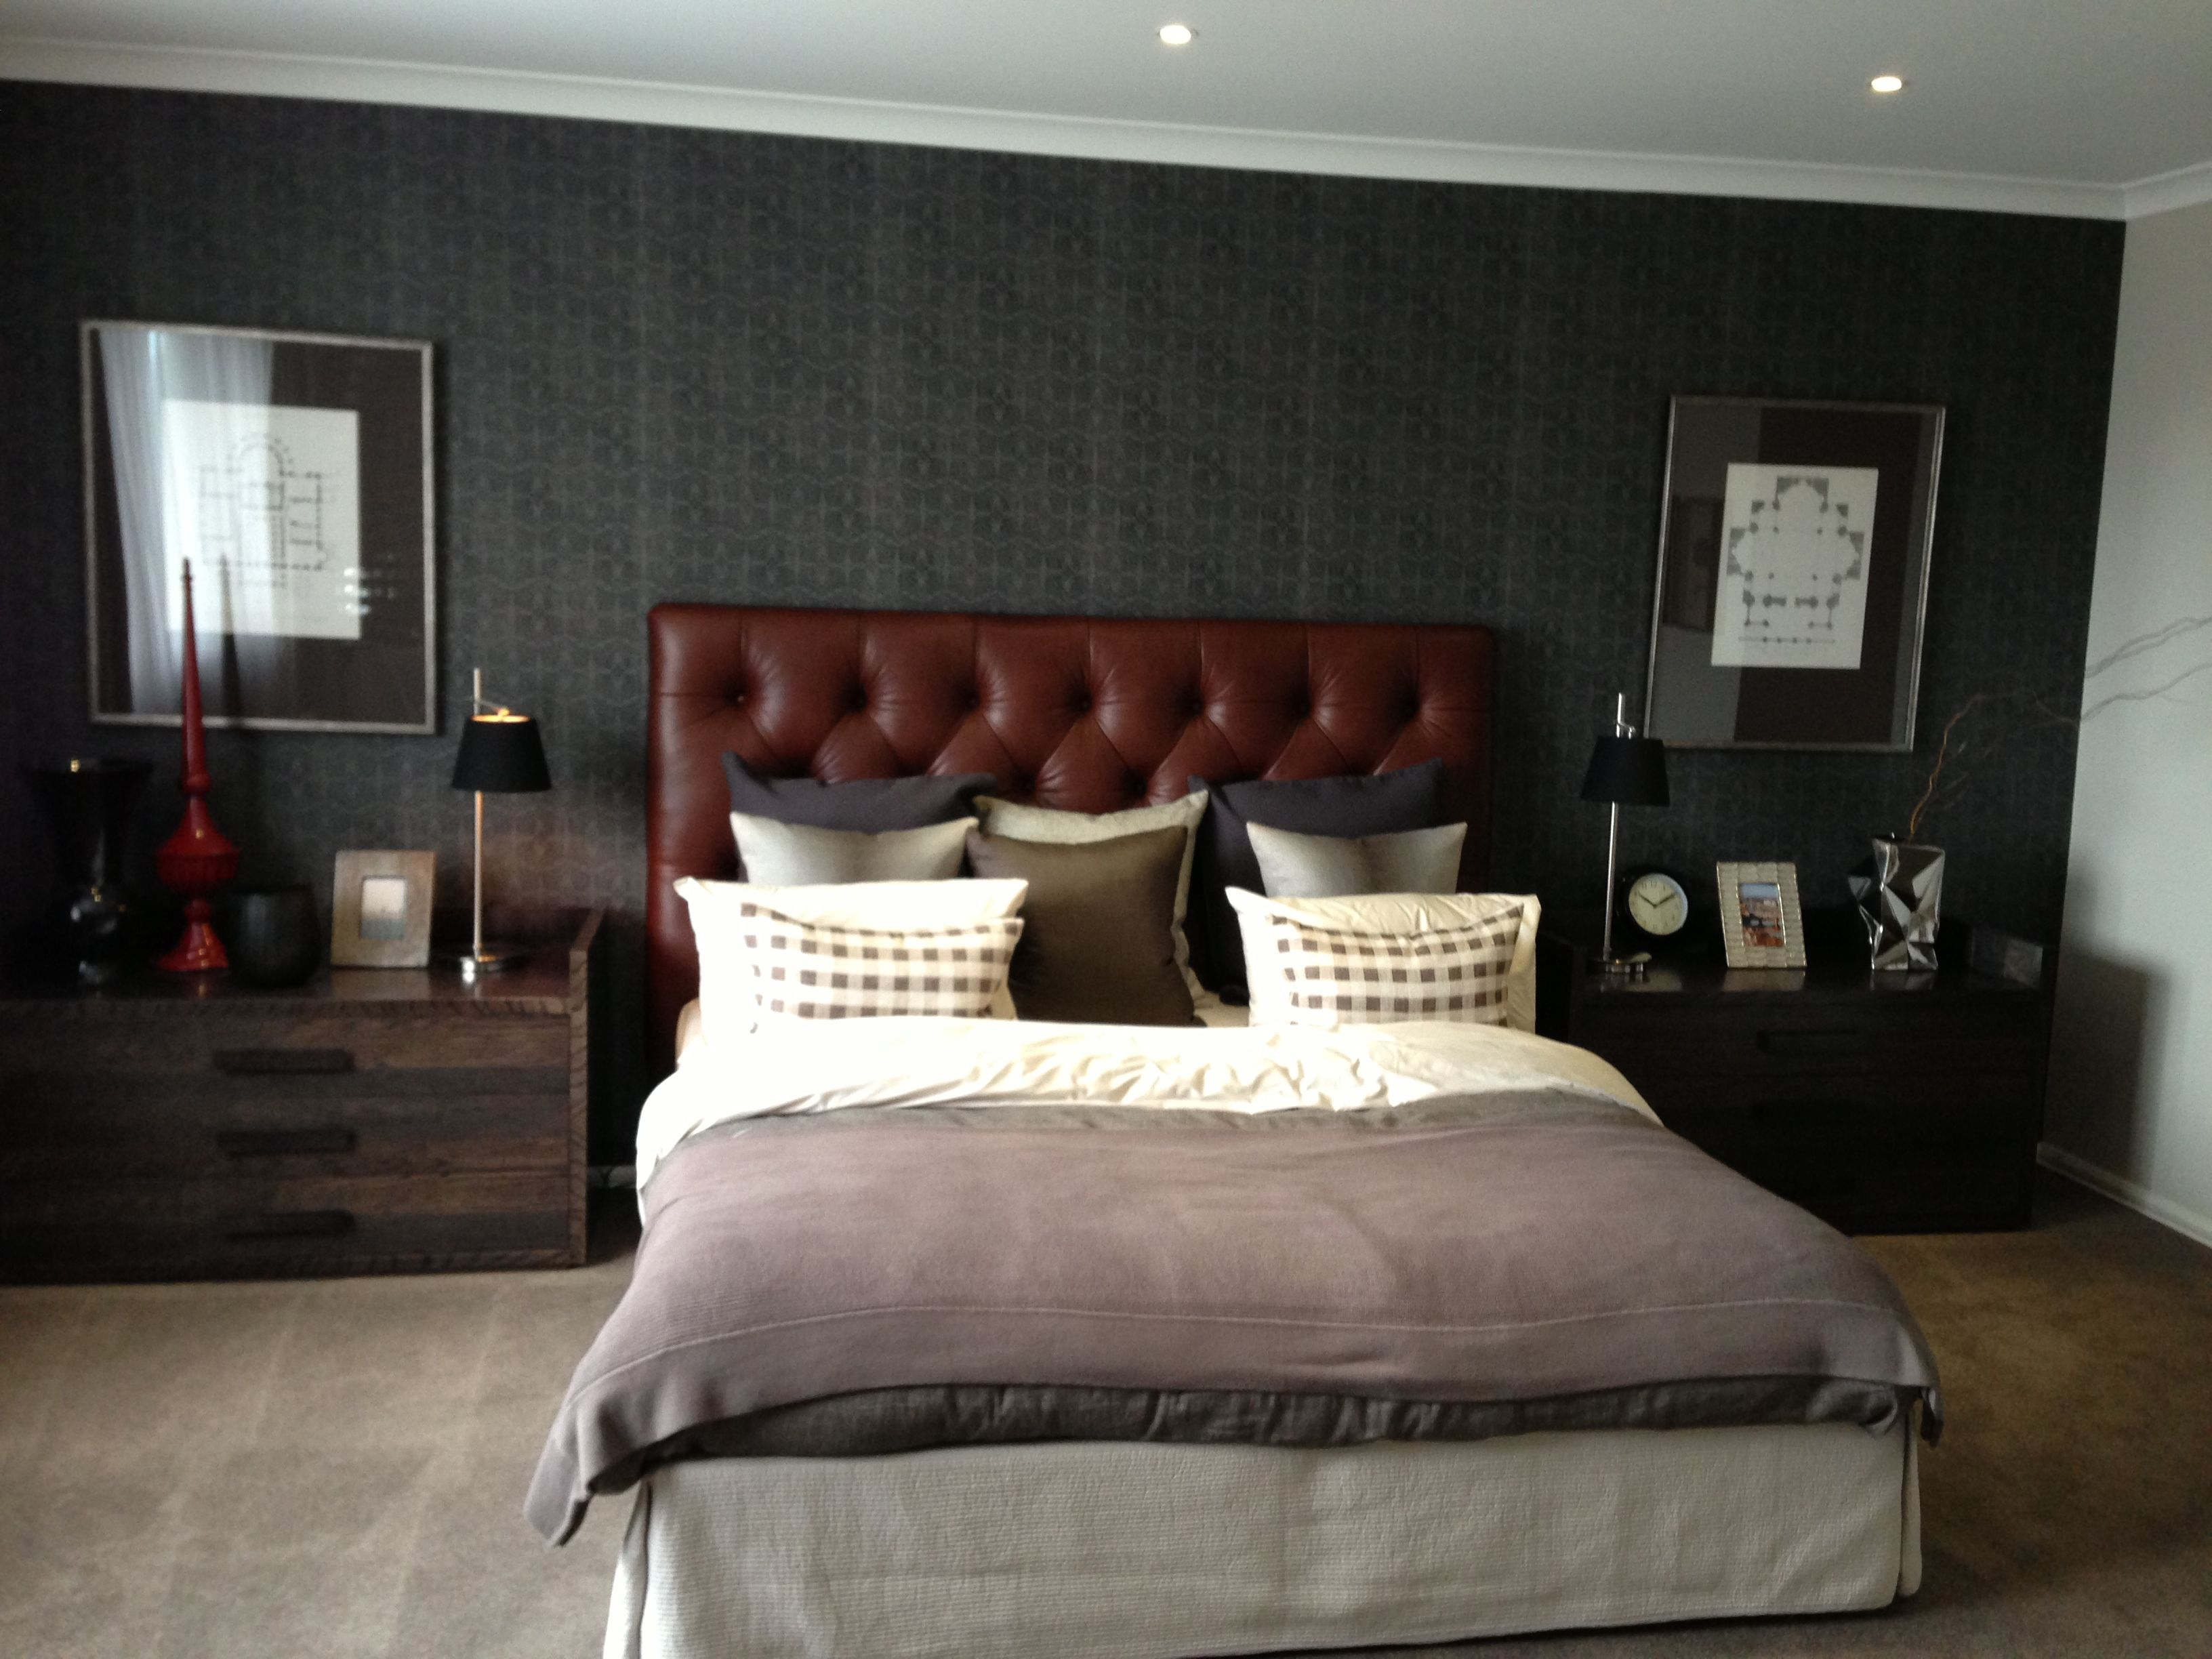 Masculine Bedrooms Interior Decoration With Brown Leather Tufted Headboard Idea